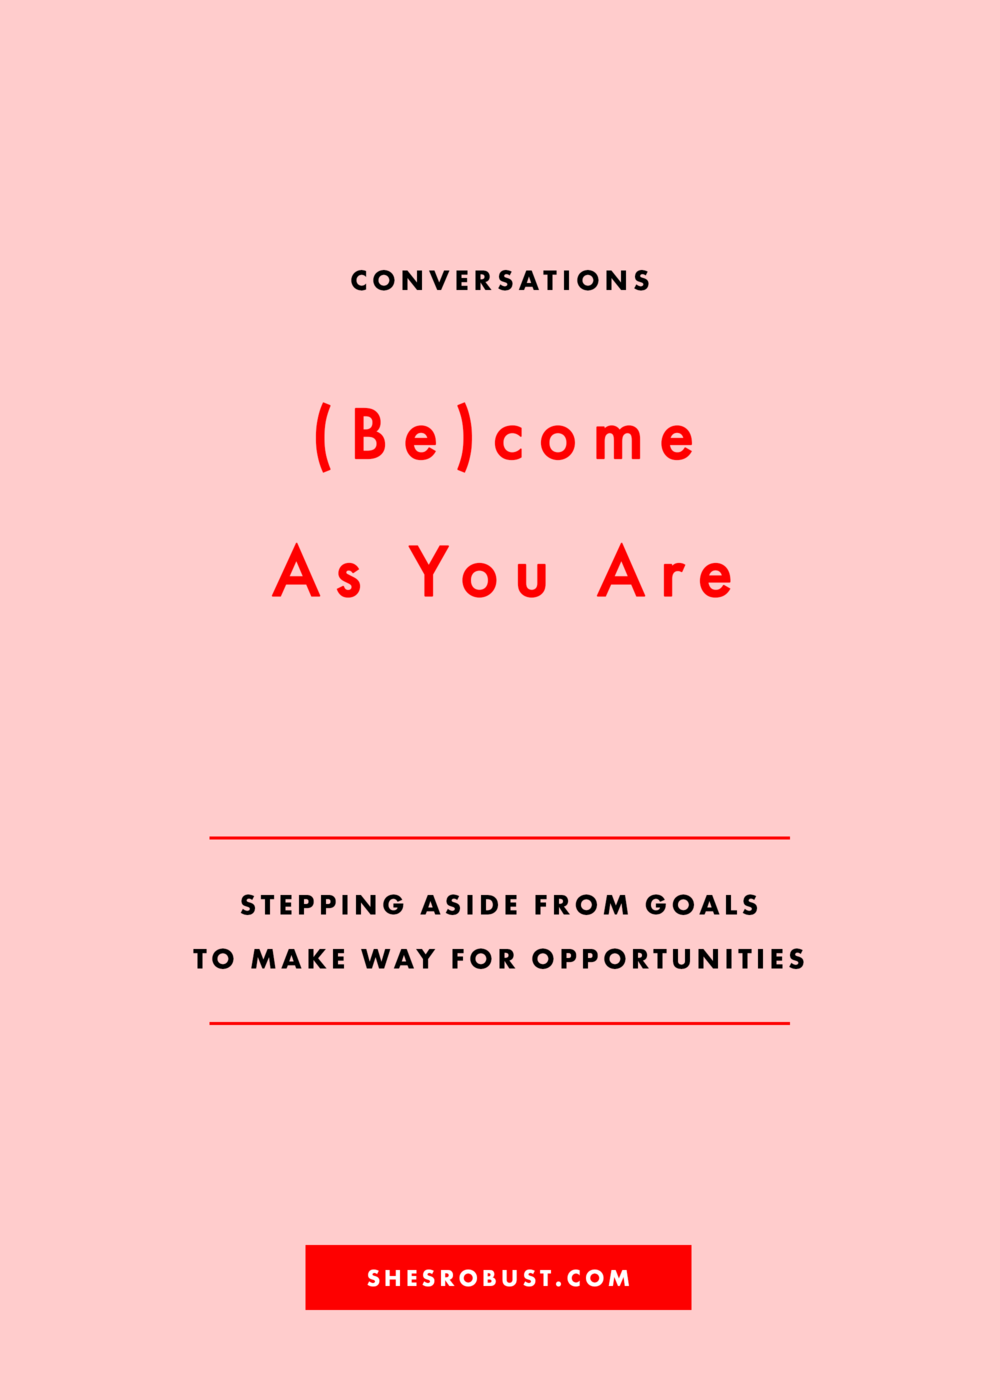 What should you do when opportunities ask you to step aside from your goals?